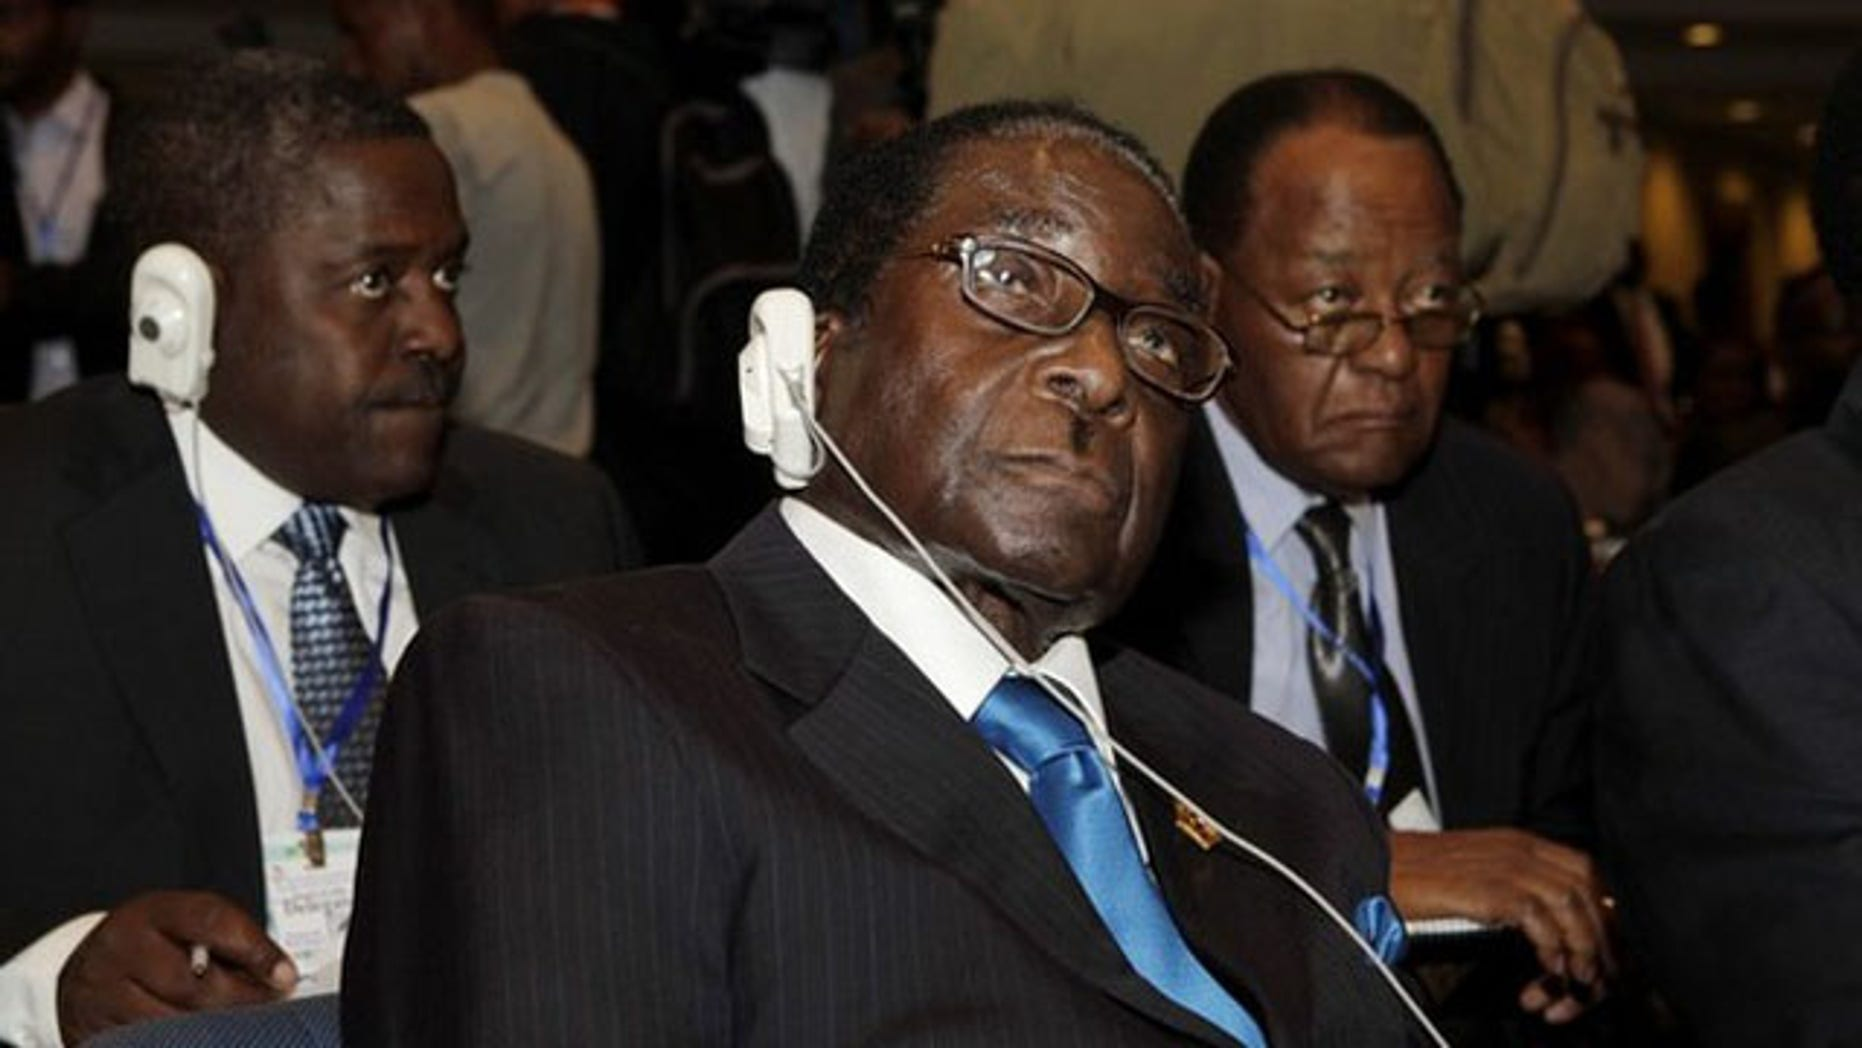 Zimbabwe's President Robert Mugabe attends the 16th African Union summit in Ethiopia's capital Addis Ababa Jan. 30.